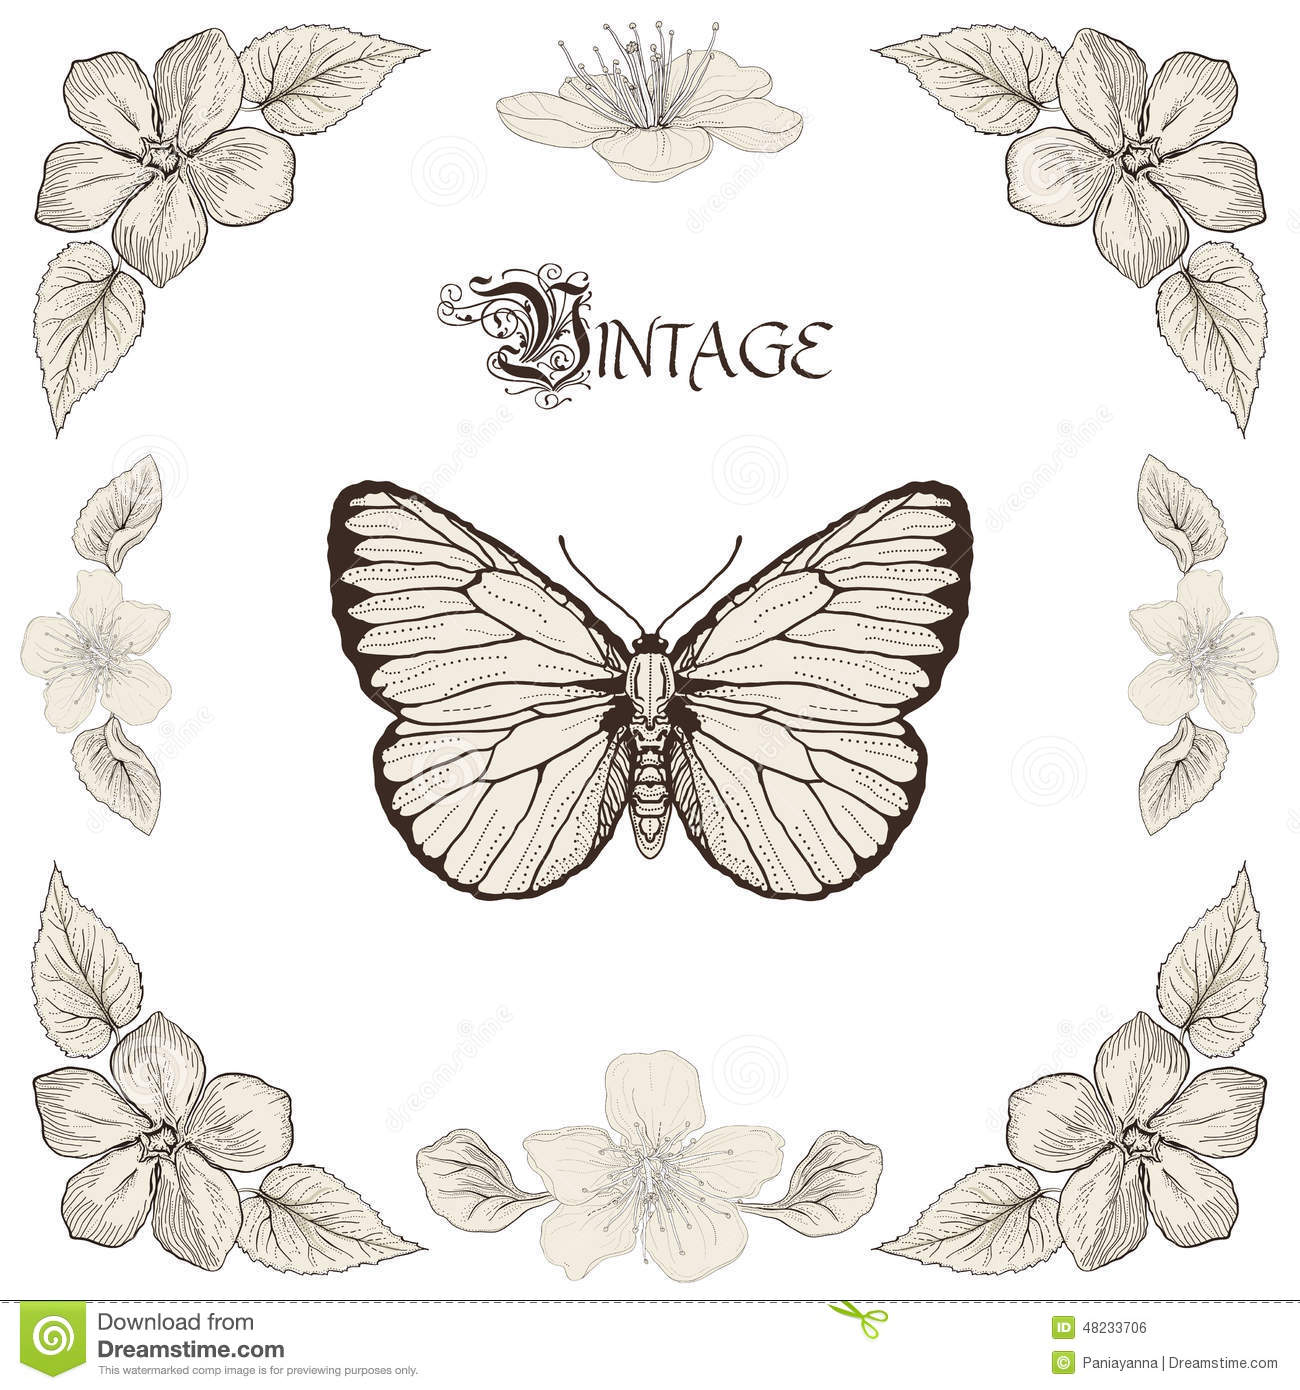 butterfly and flowers drawing vintage engraving style stock vector